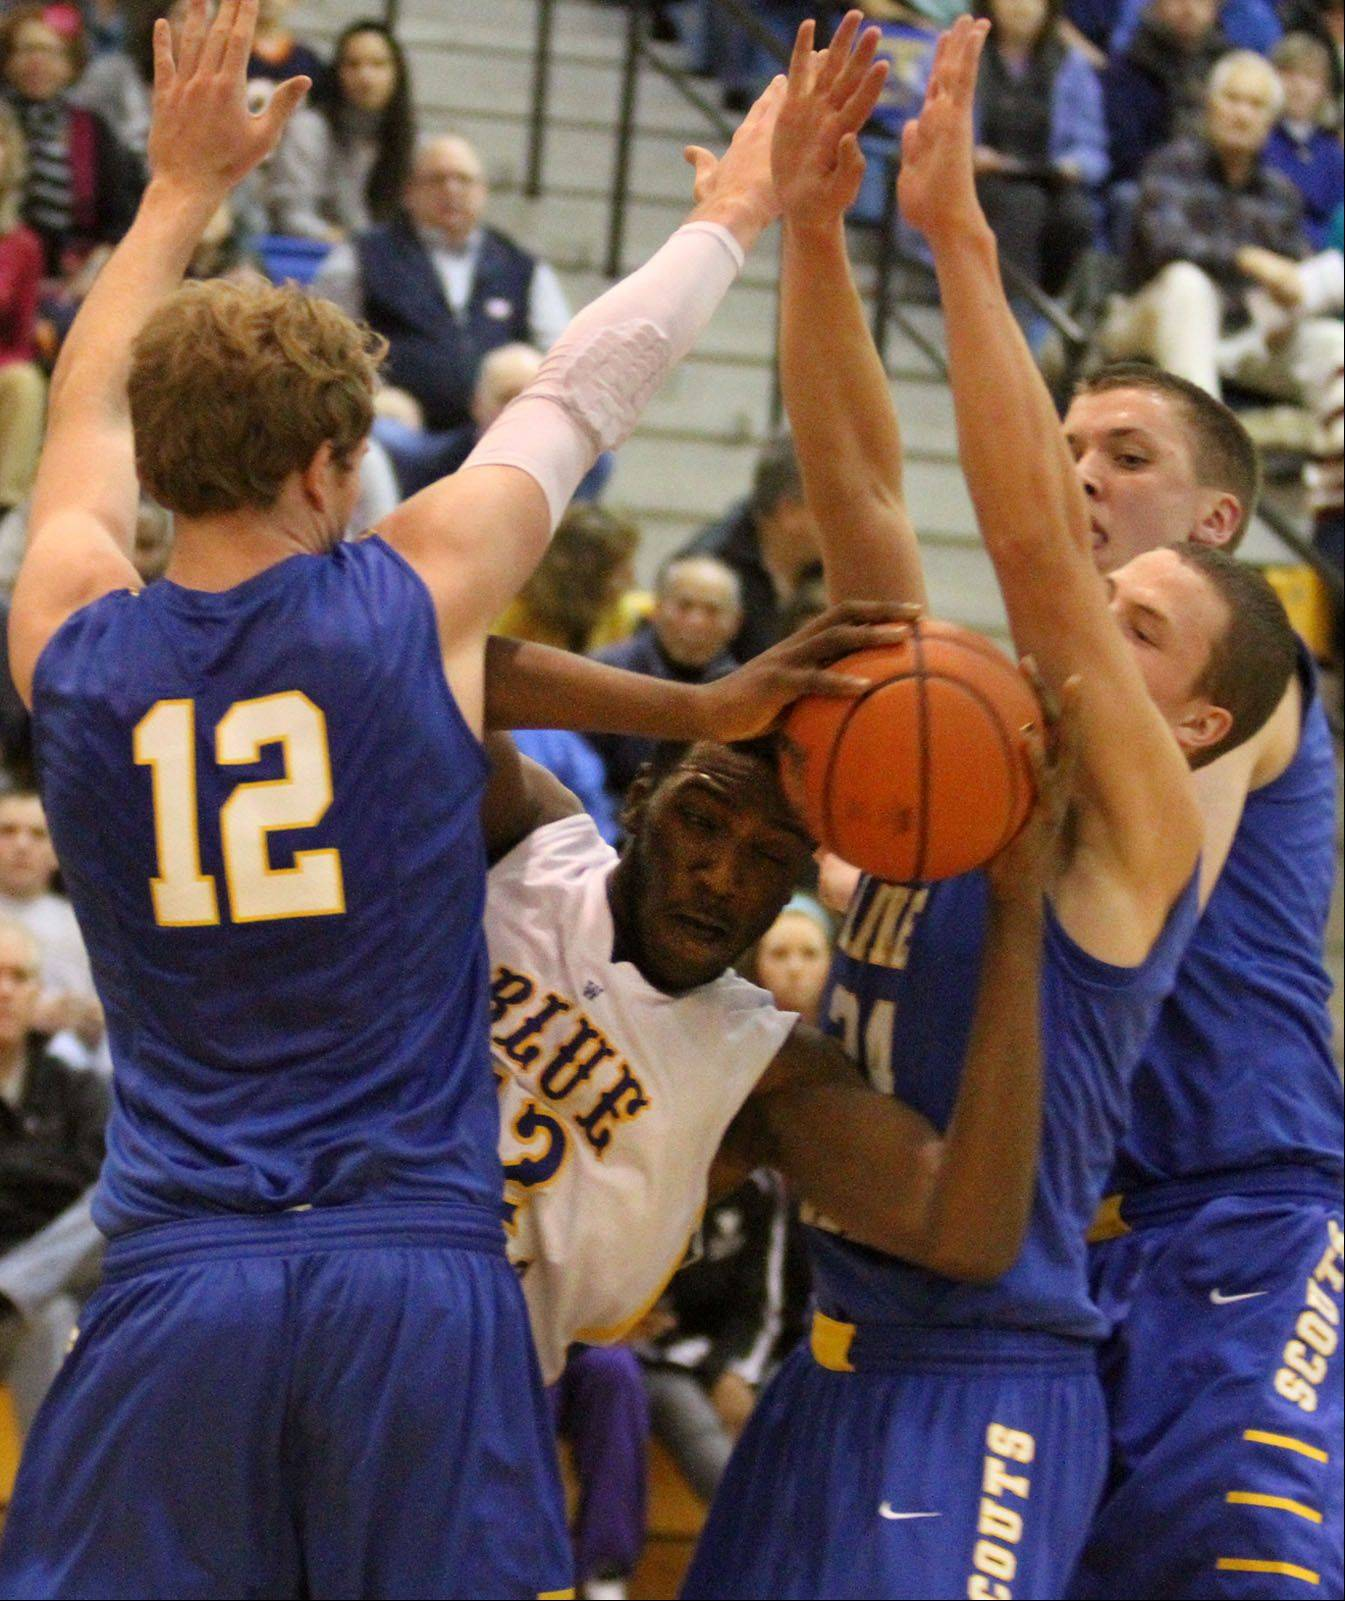 Warren's Dre Von Hill is boxed in by three Lake Forest defenders including Evan Boudreaux, left.